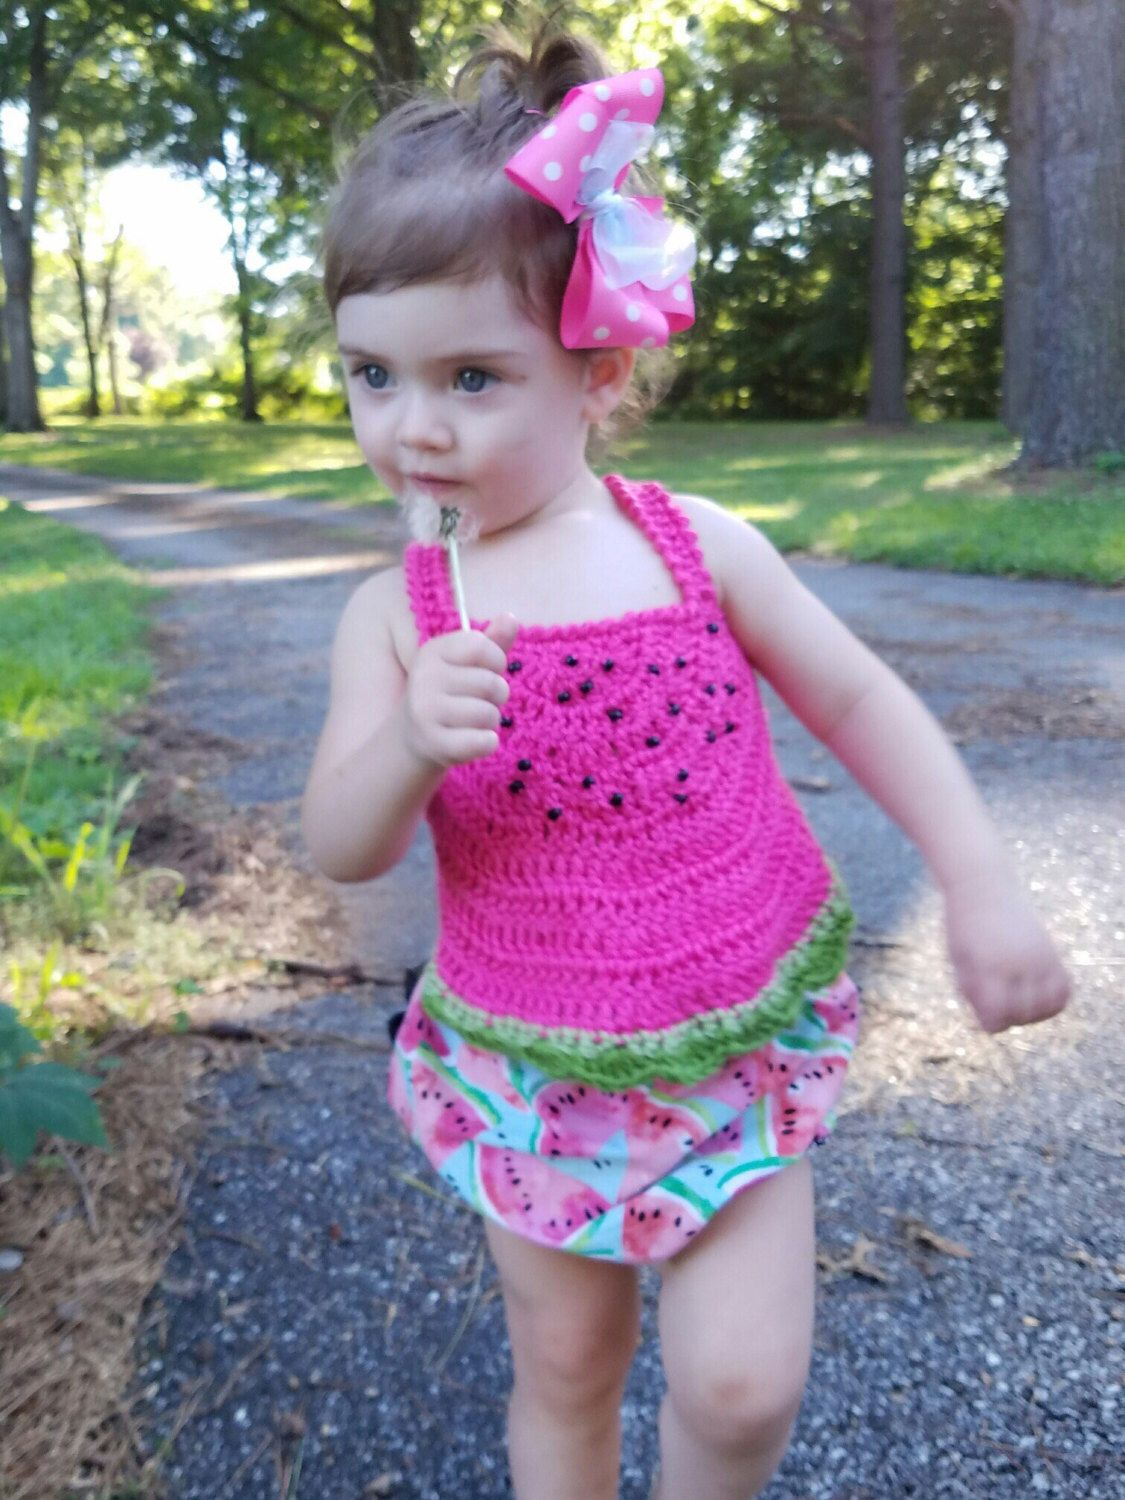 Beautiful crochet dresses for kids trendy - Crochet Summer Top Watermelon Summer Top By Pinkpoppiesstudio